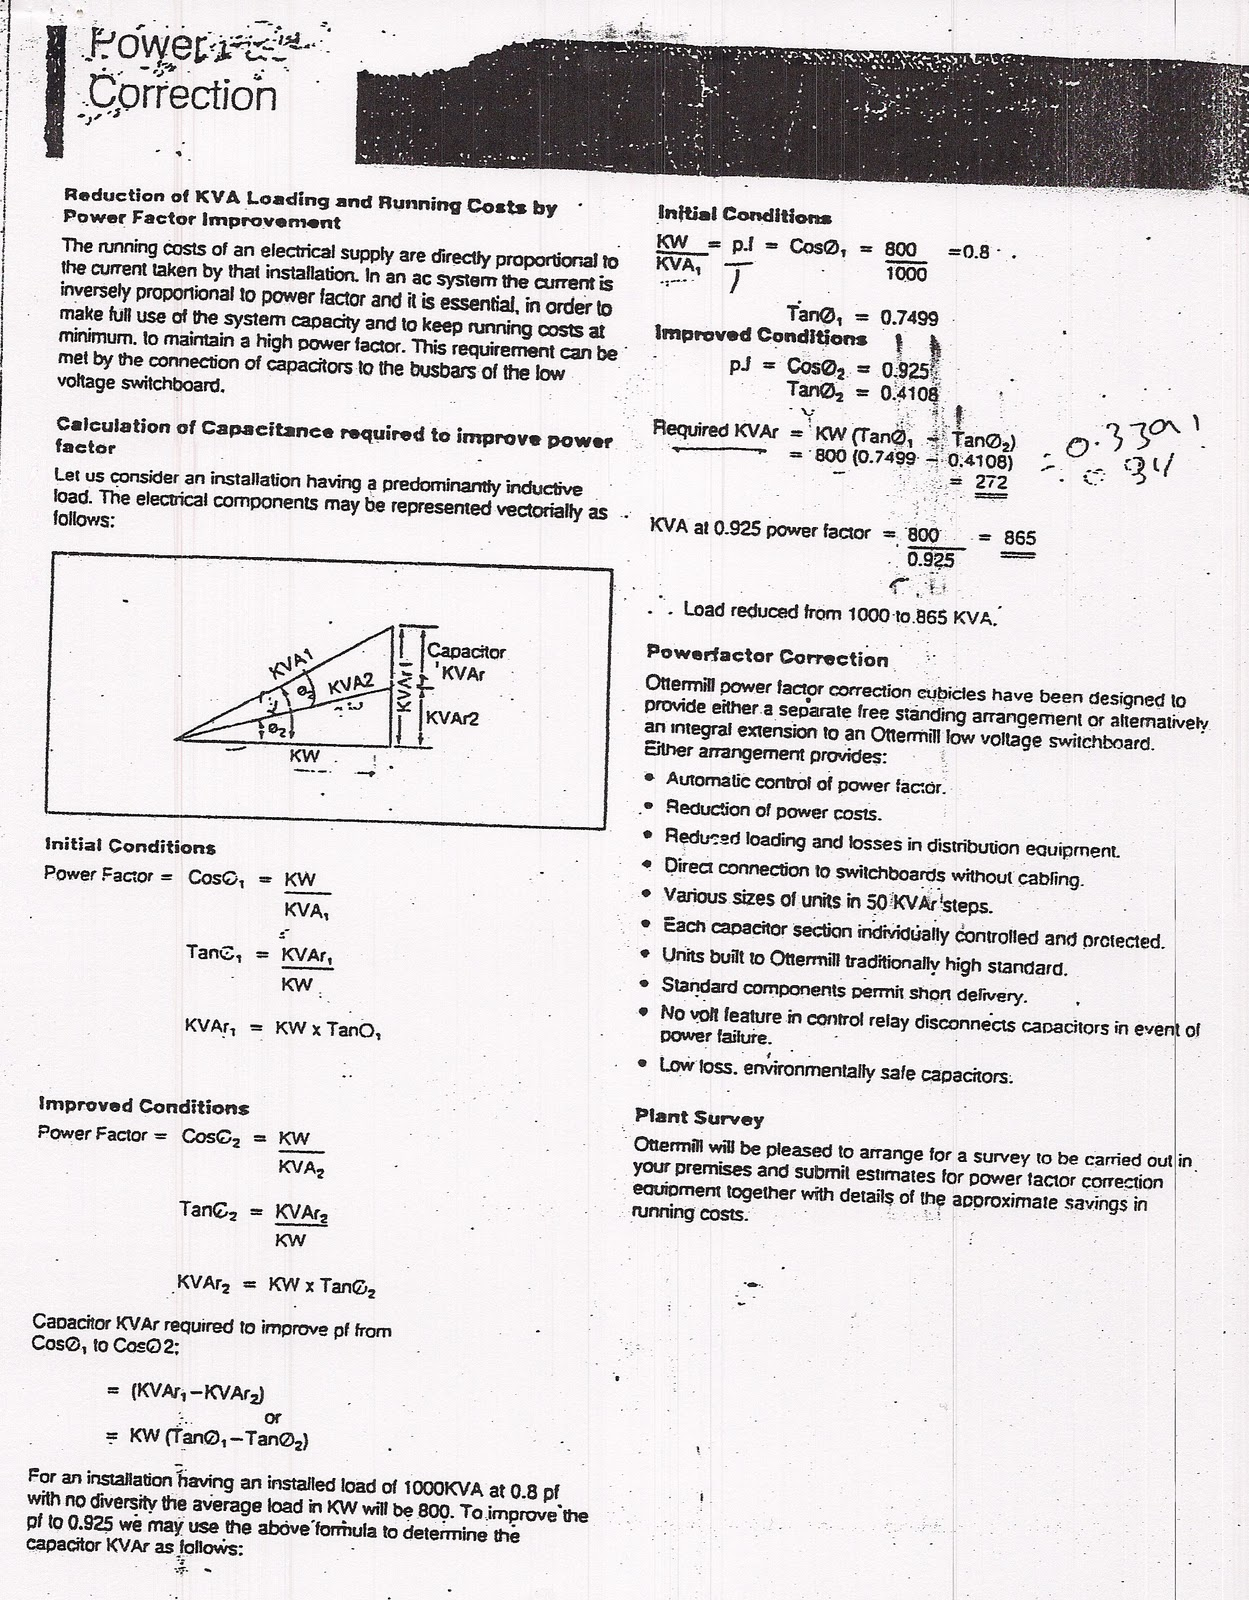 single phase voltage drop formula ecg limb lead placement diagram ampere electrical contracting est cable size calculation